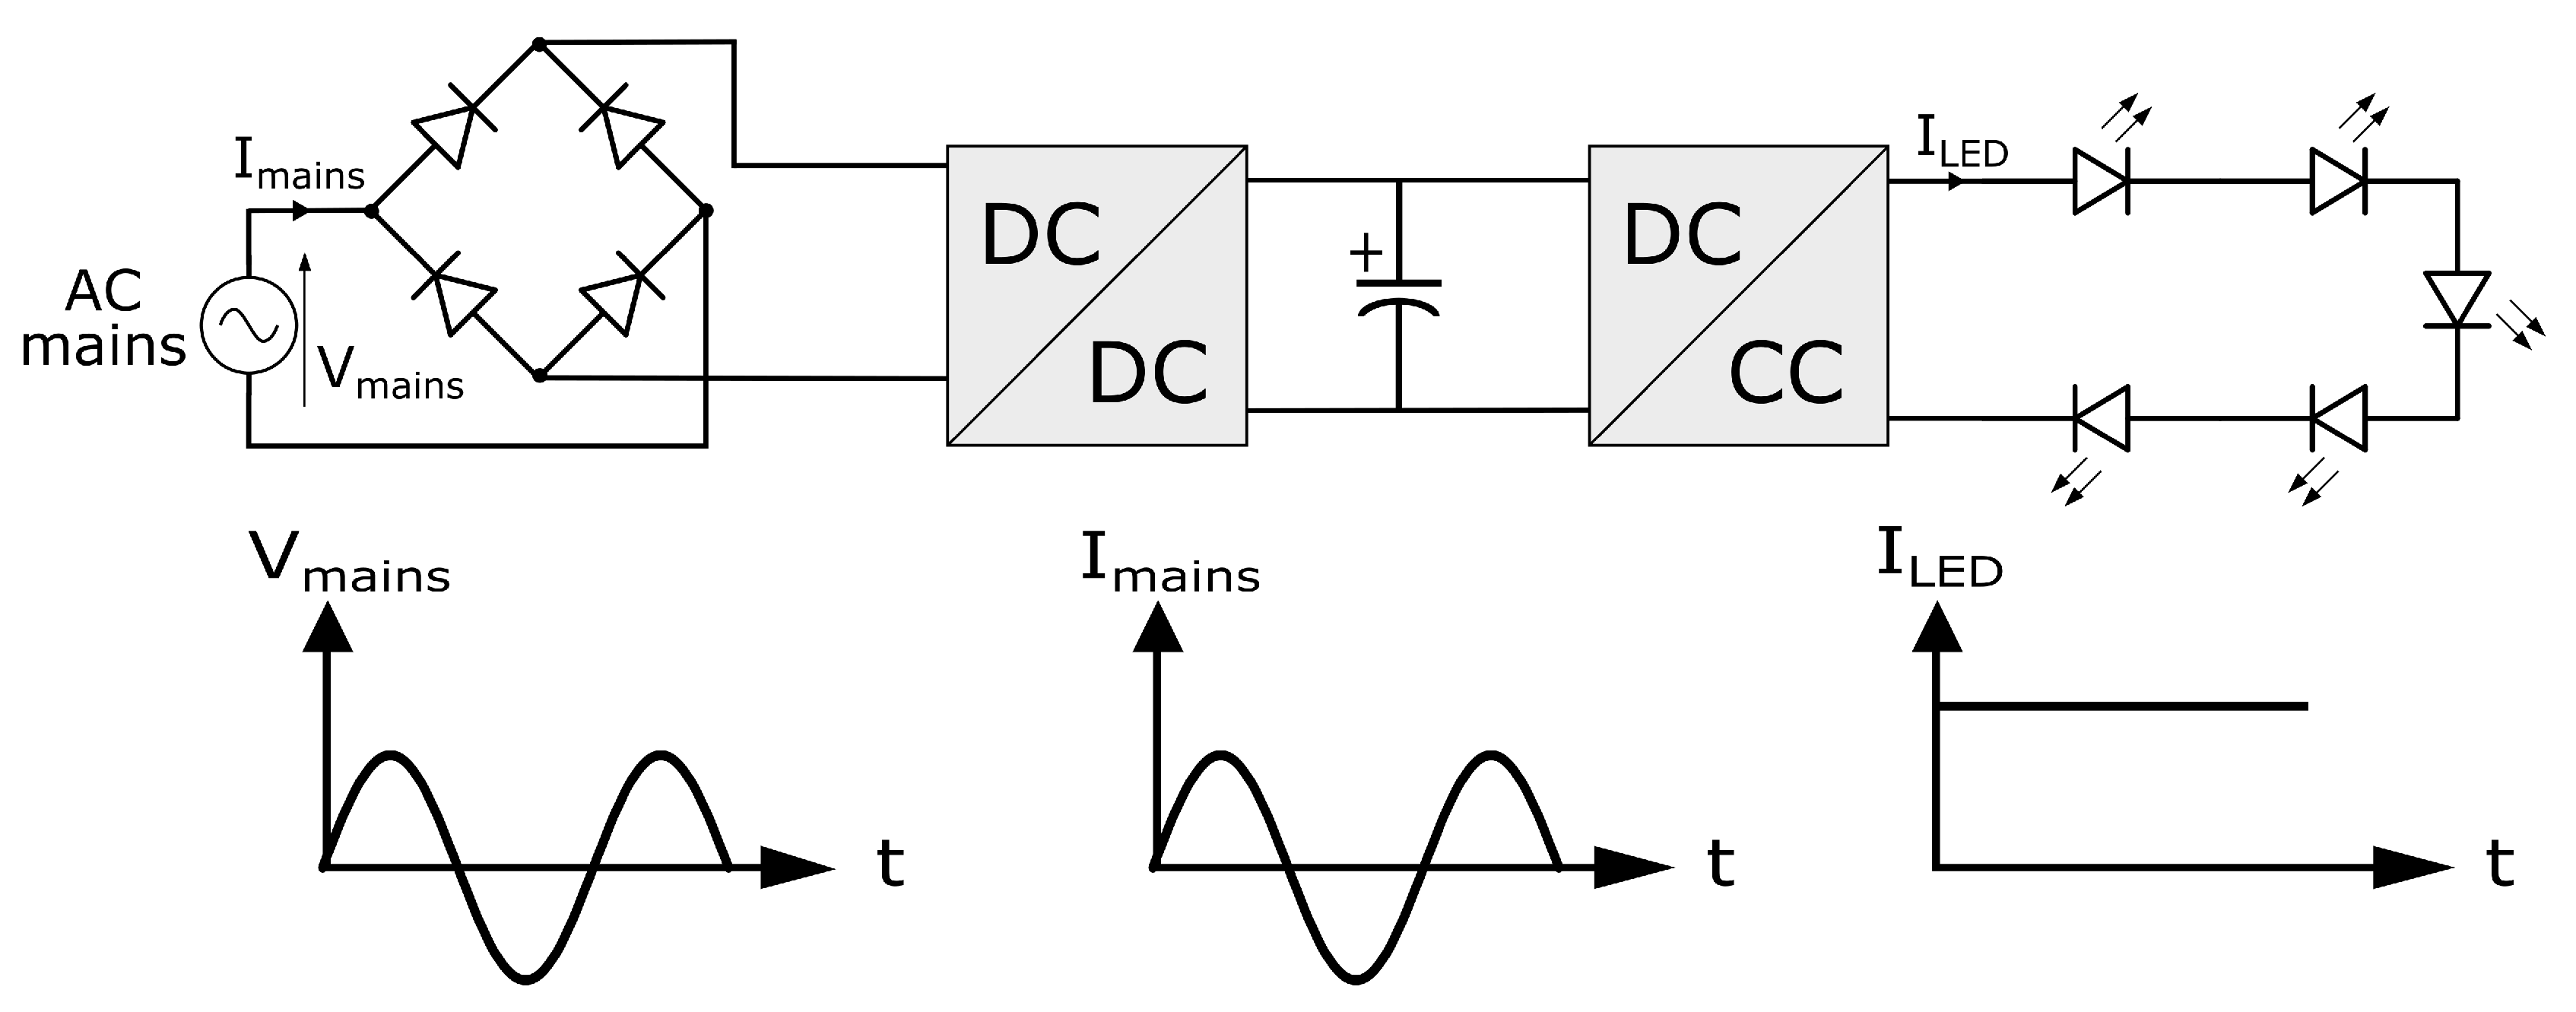 Energies Free Full Text Dc Grids For Smart Led Based Lighting The Circuit Of Alternating Light Is Shown As In Fig 4 It Made 10 01454 G004 Figure